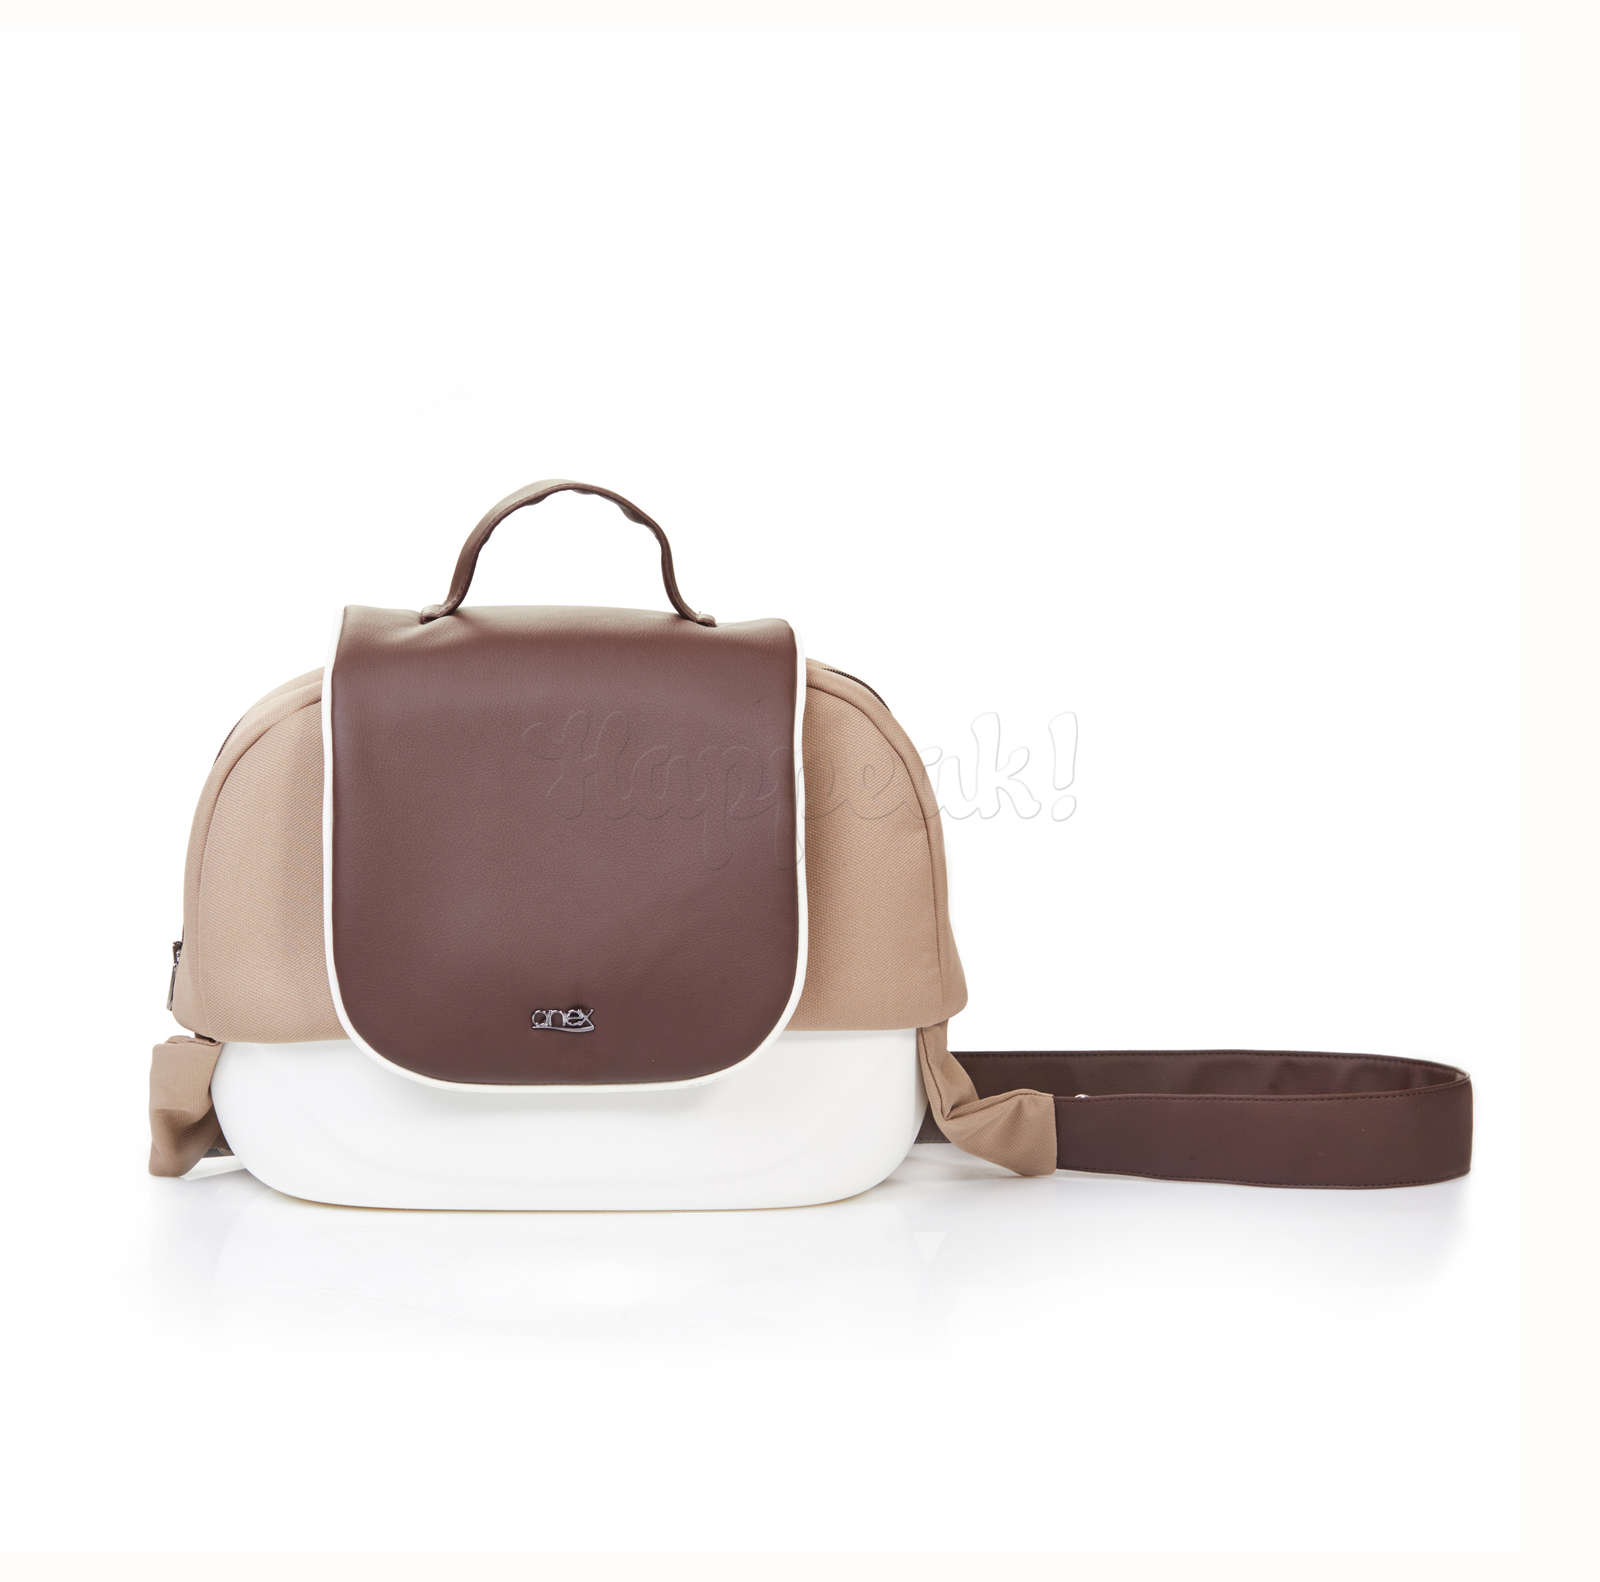 Коляска ANEX SPORT BEIGE-BROWN 3 В 1